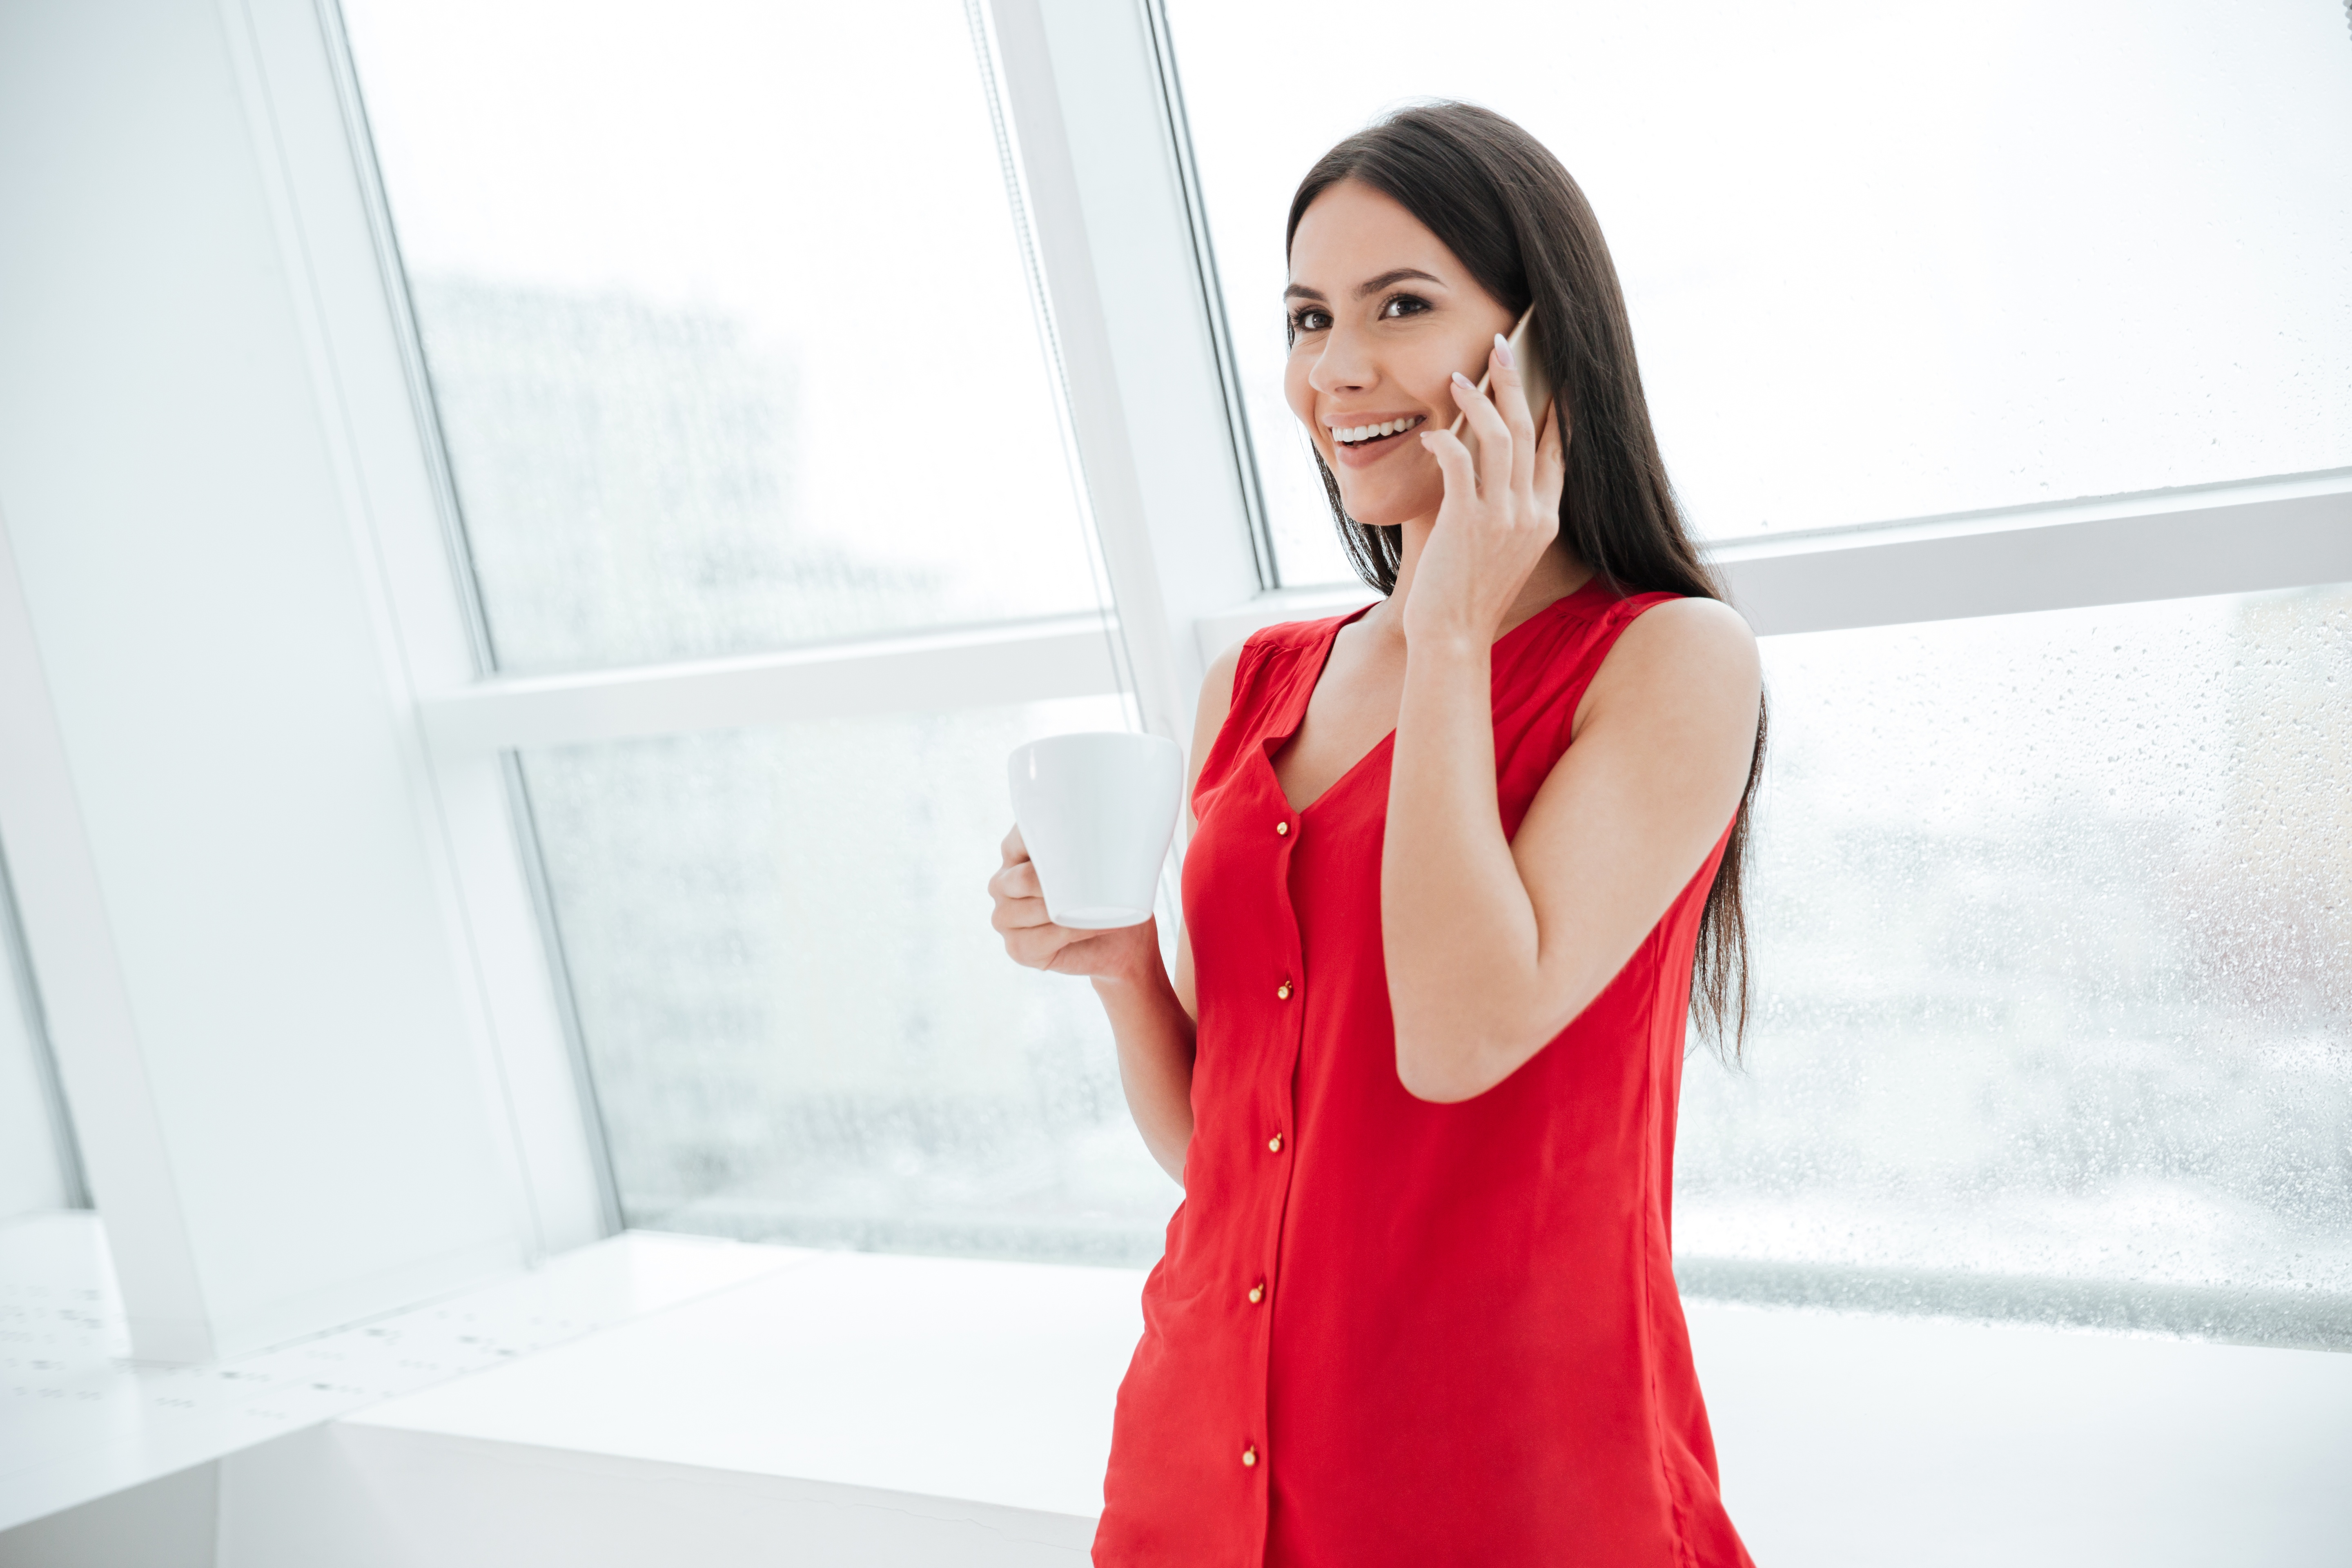 Woman in D-Style Red dress